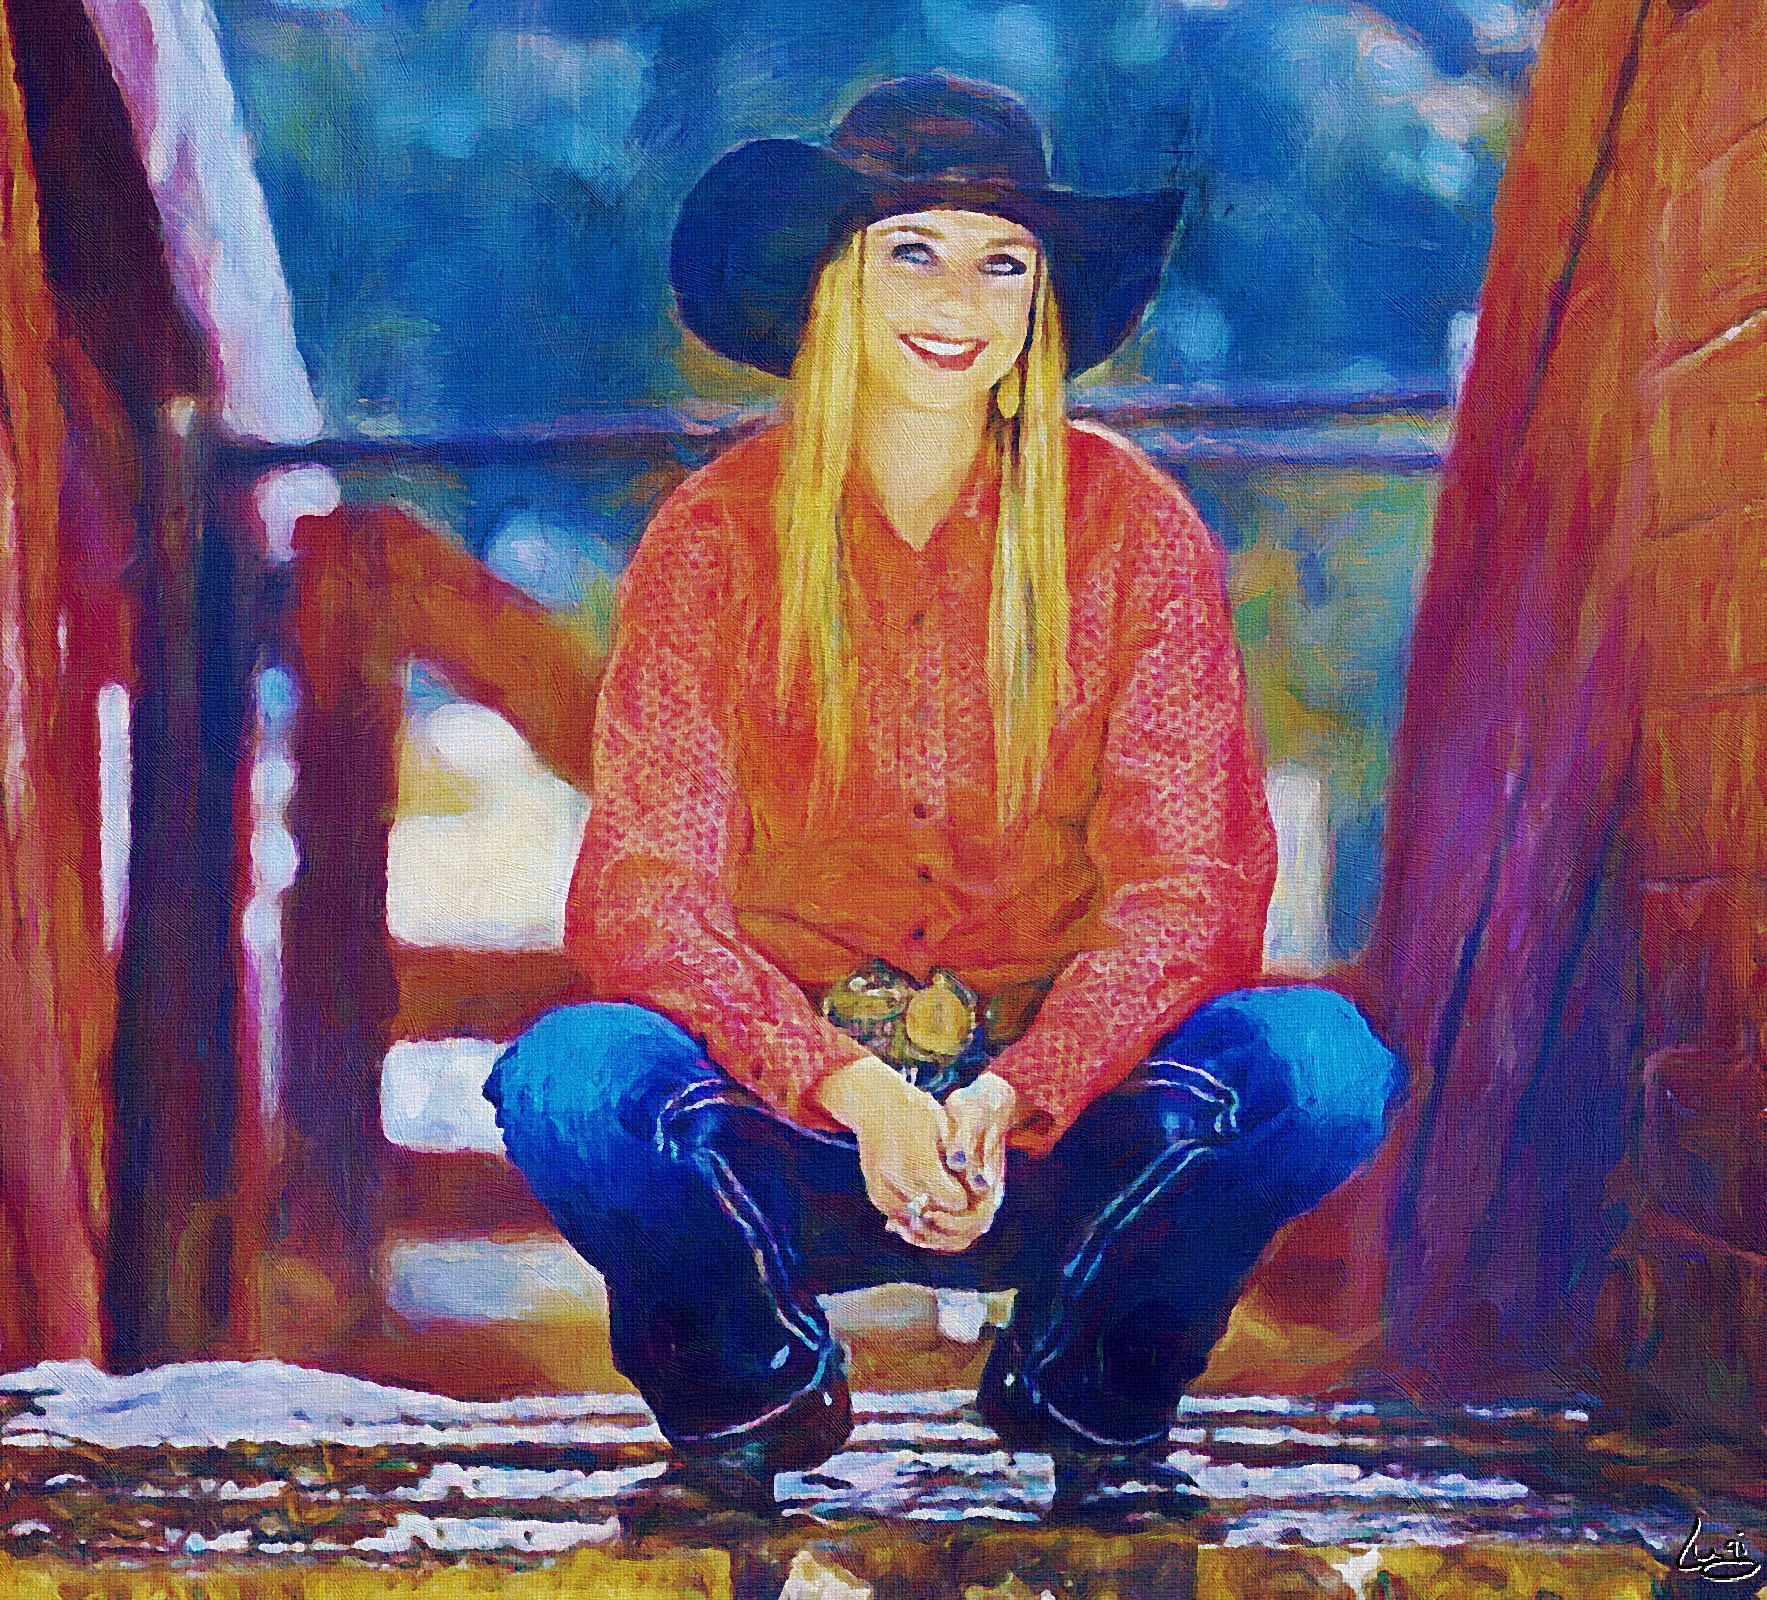 cowgirl-4190437_1920_ps1_DAP_Disegnare{Variation 2}.jpg